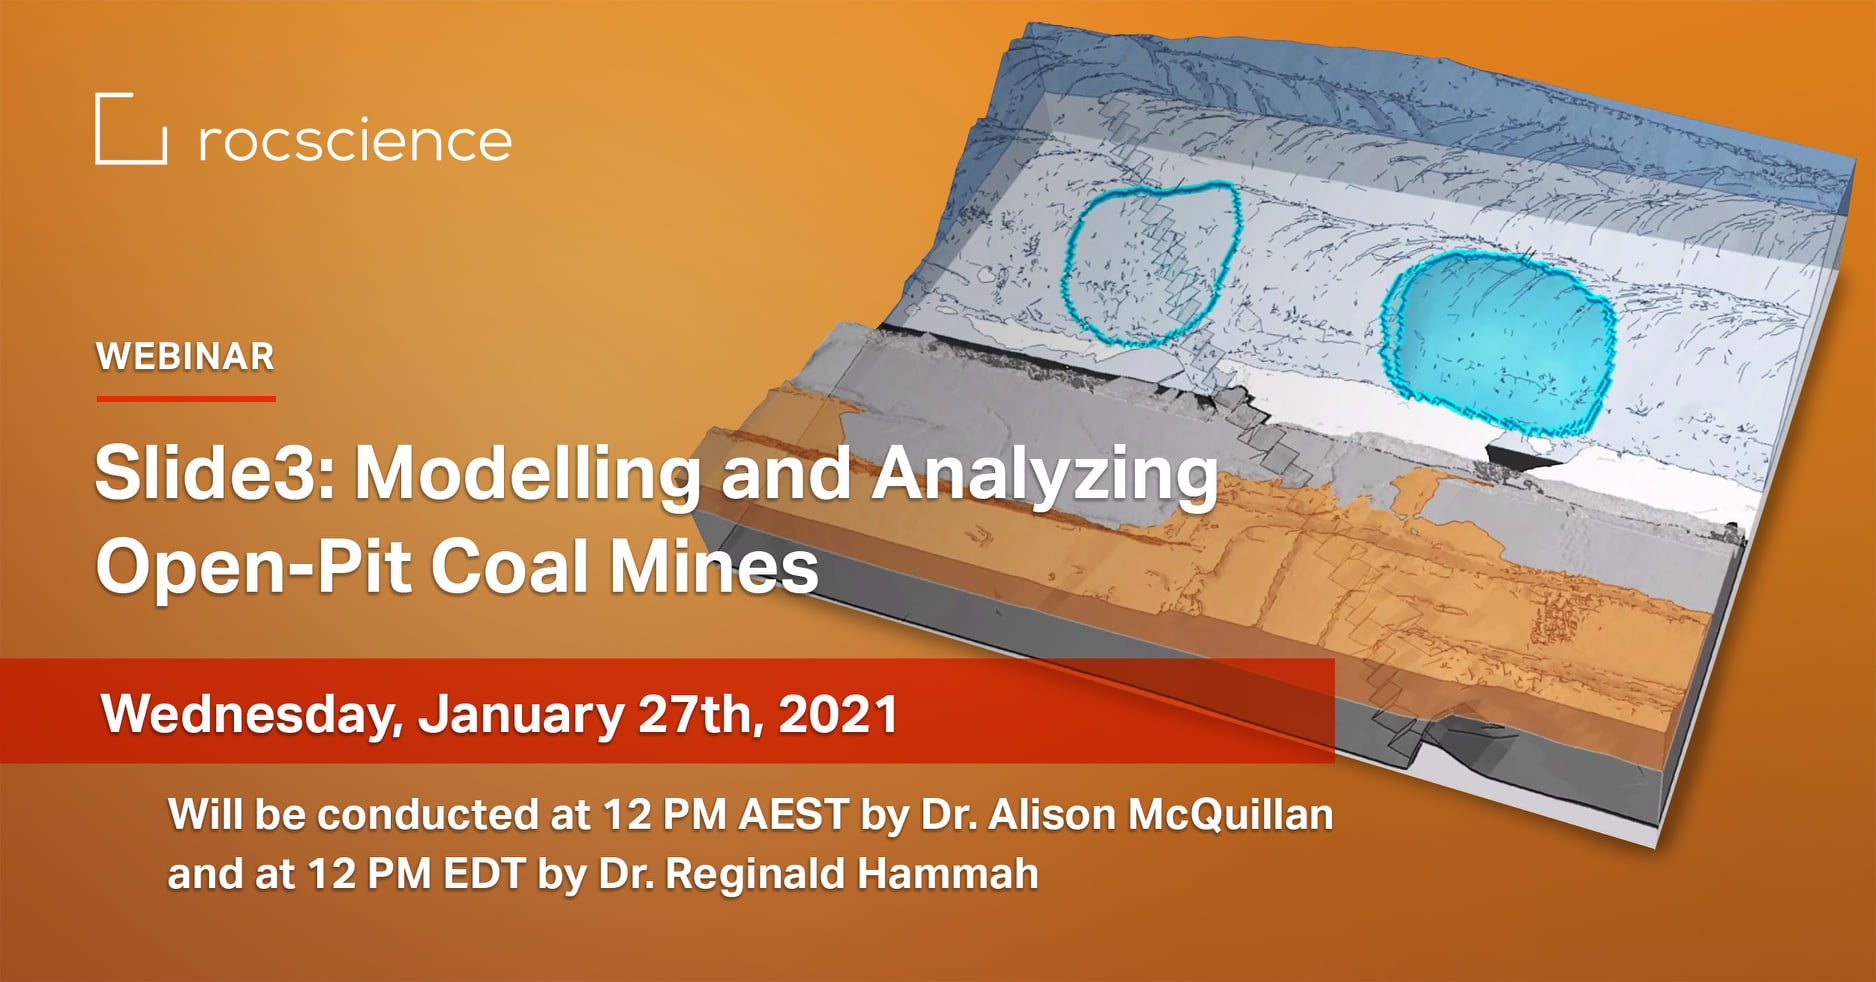 Rocscience Webinar: Slide3 - Modelling and Analyzing Open-pit Mines